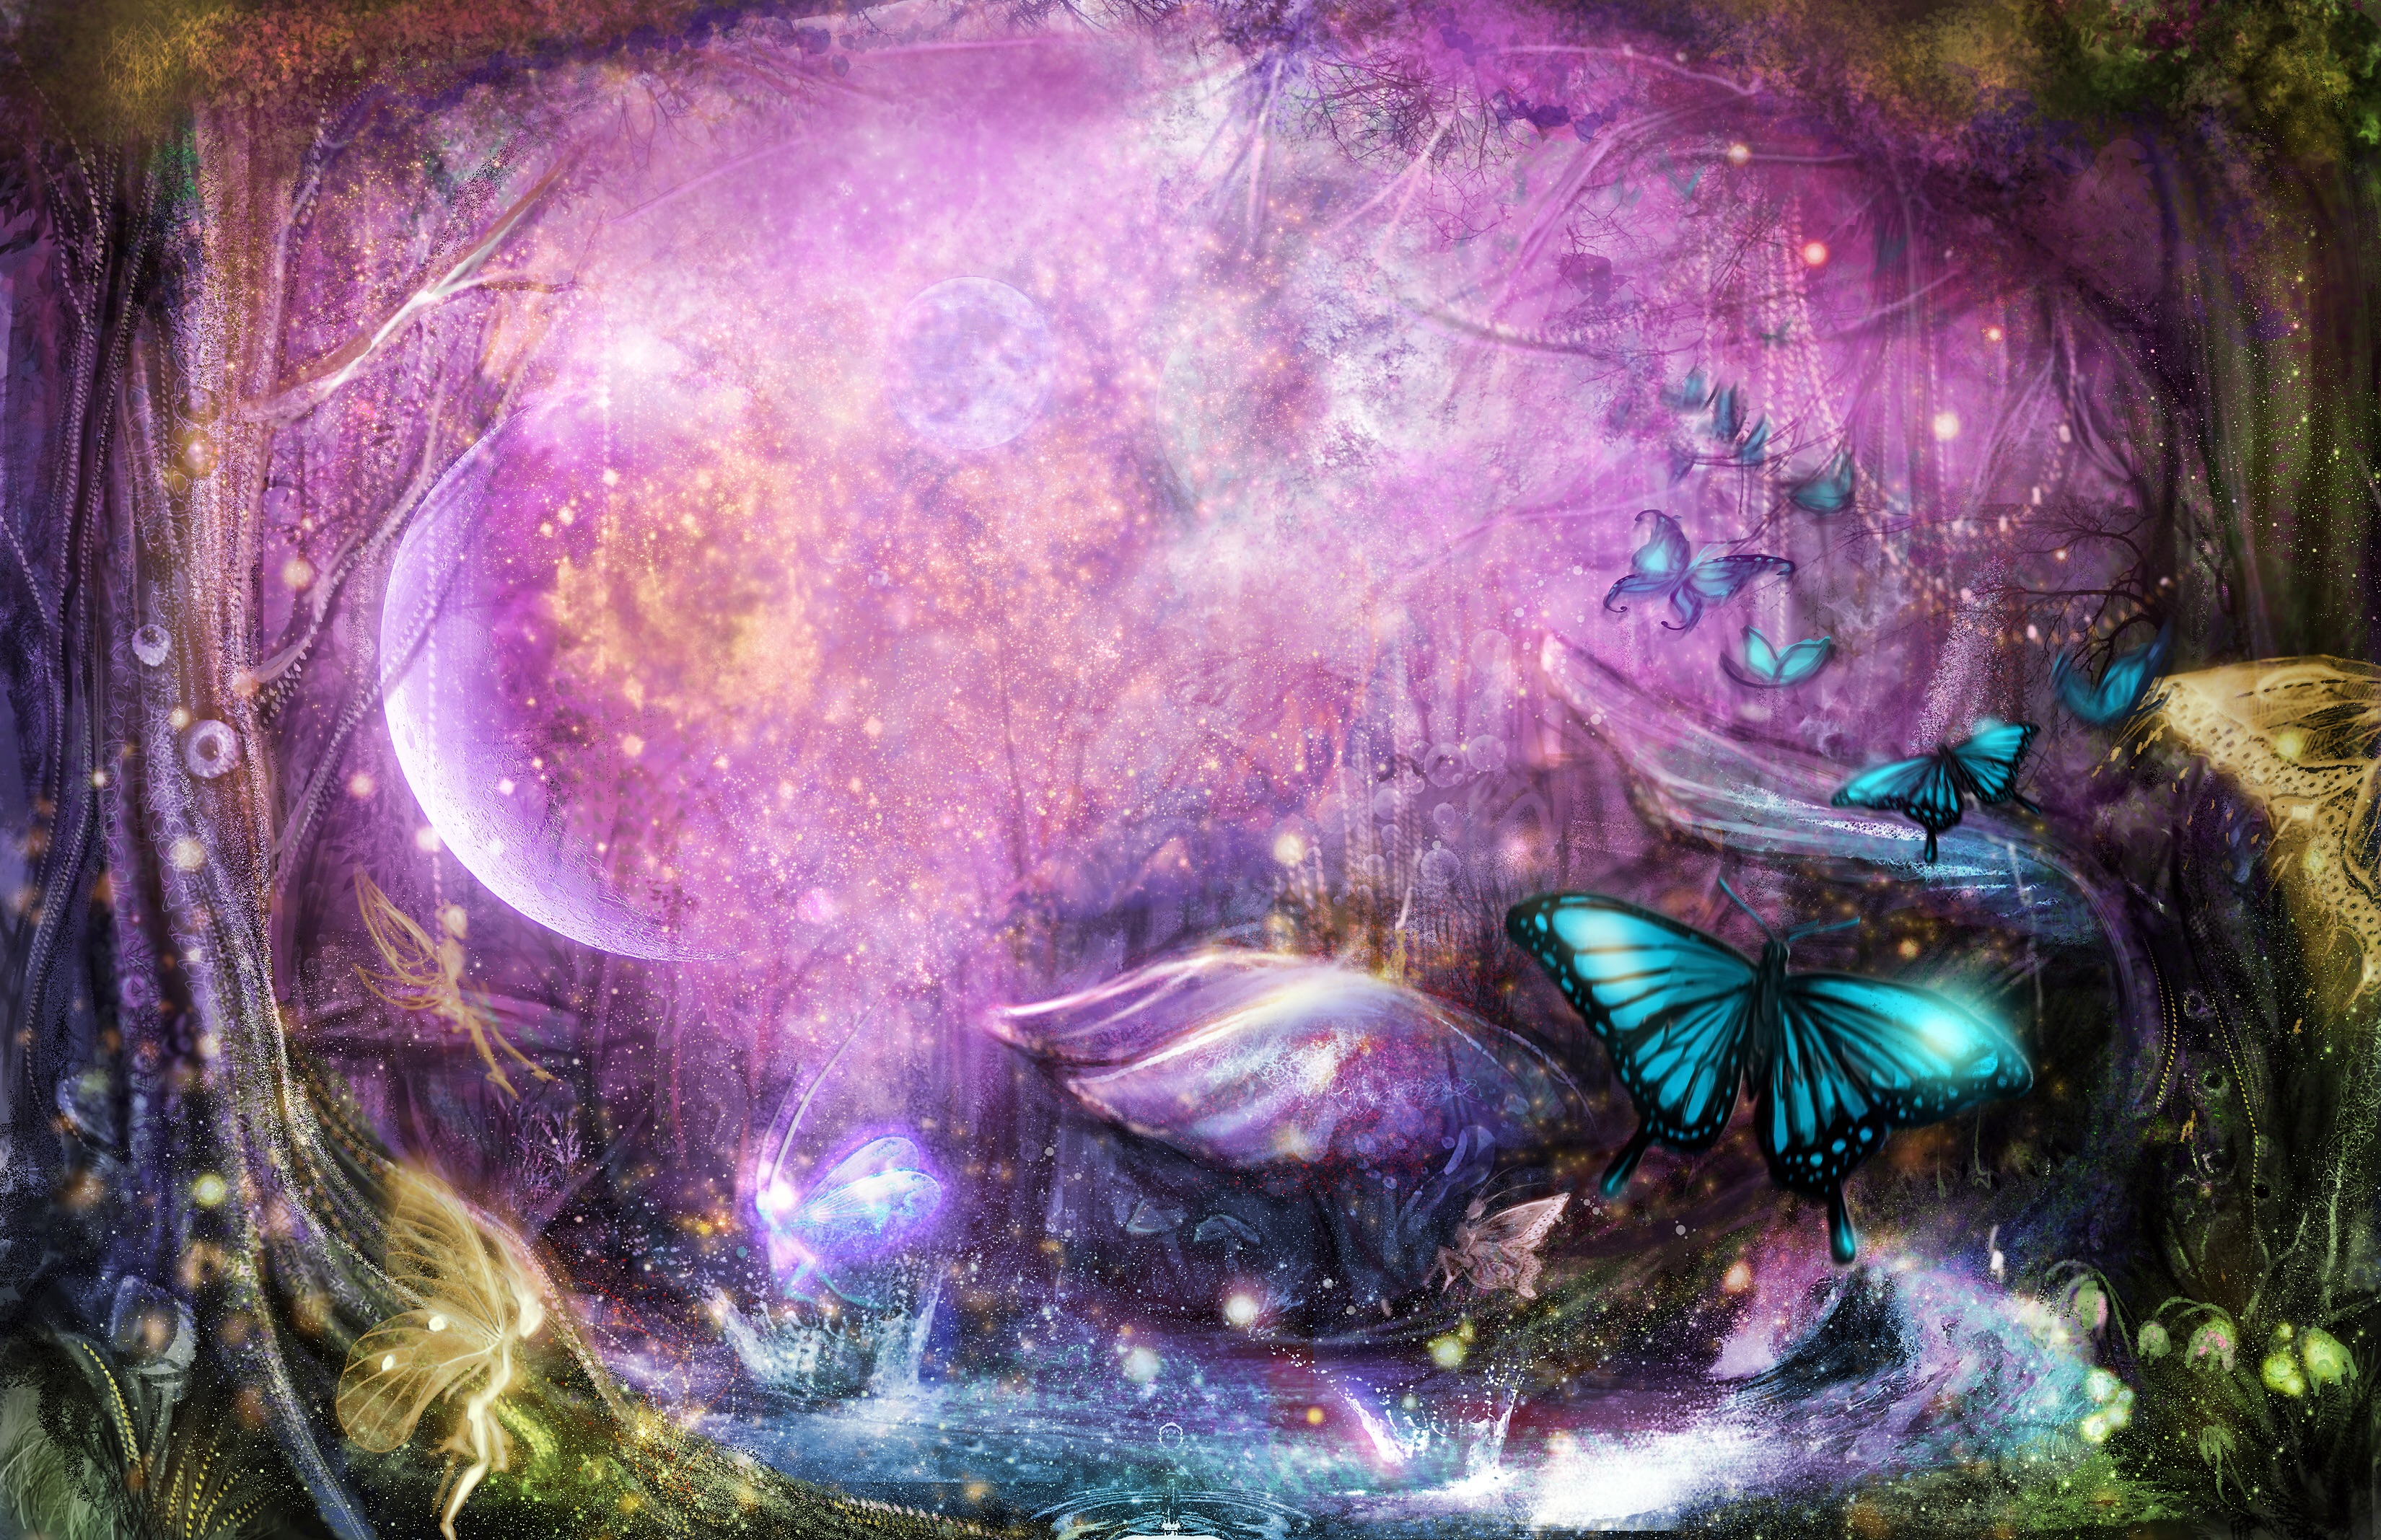 Download Cars Wallpapers For Mobile Butterfly Fantasy Hd Artist 4k Wallpapers Images